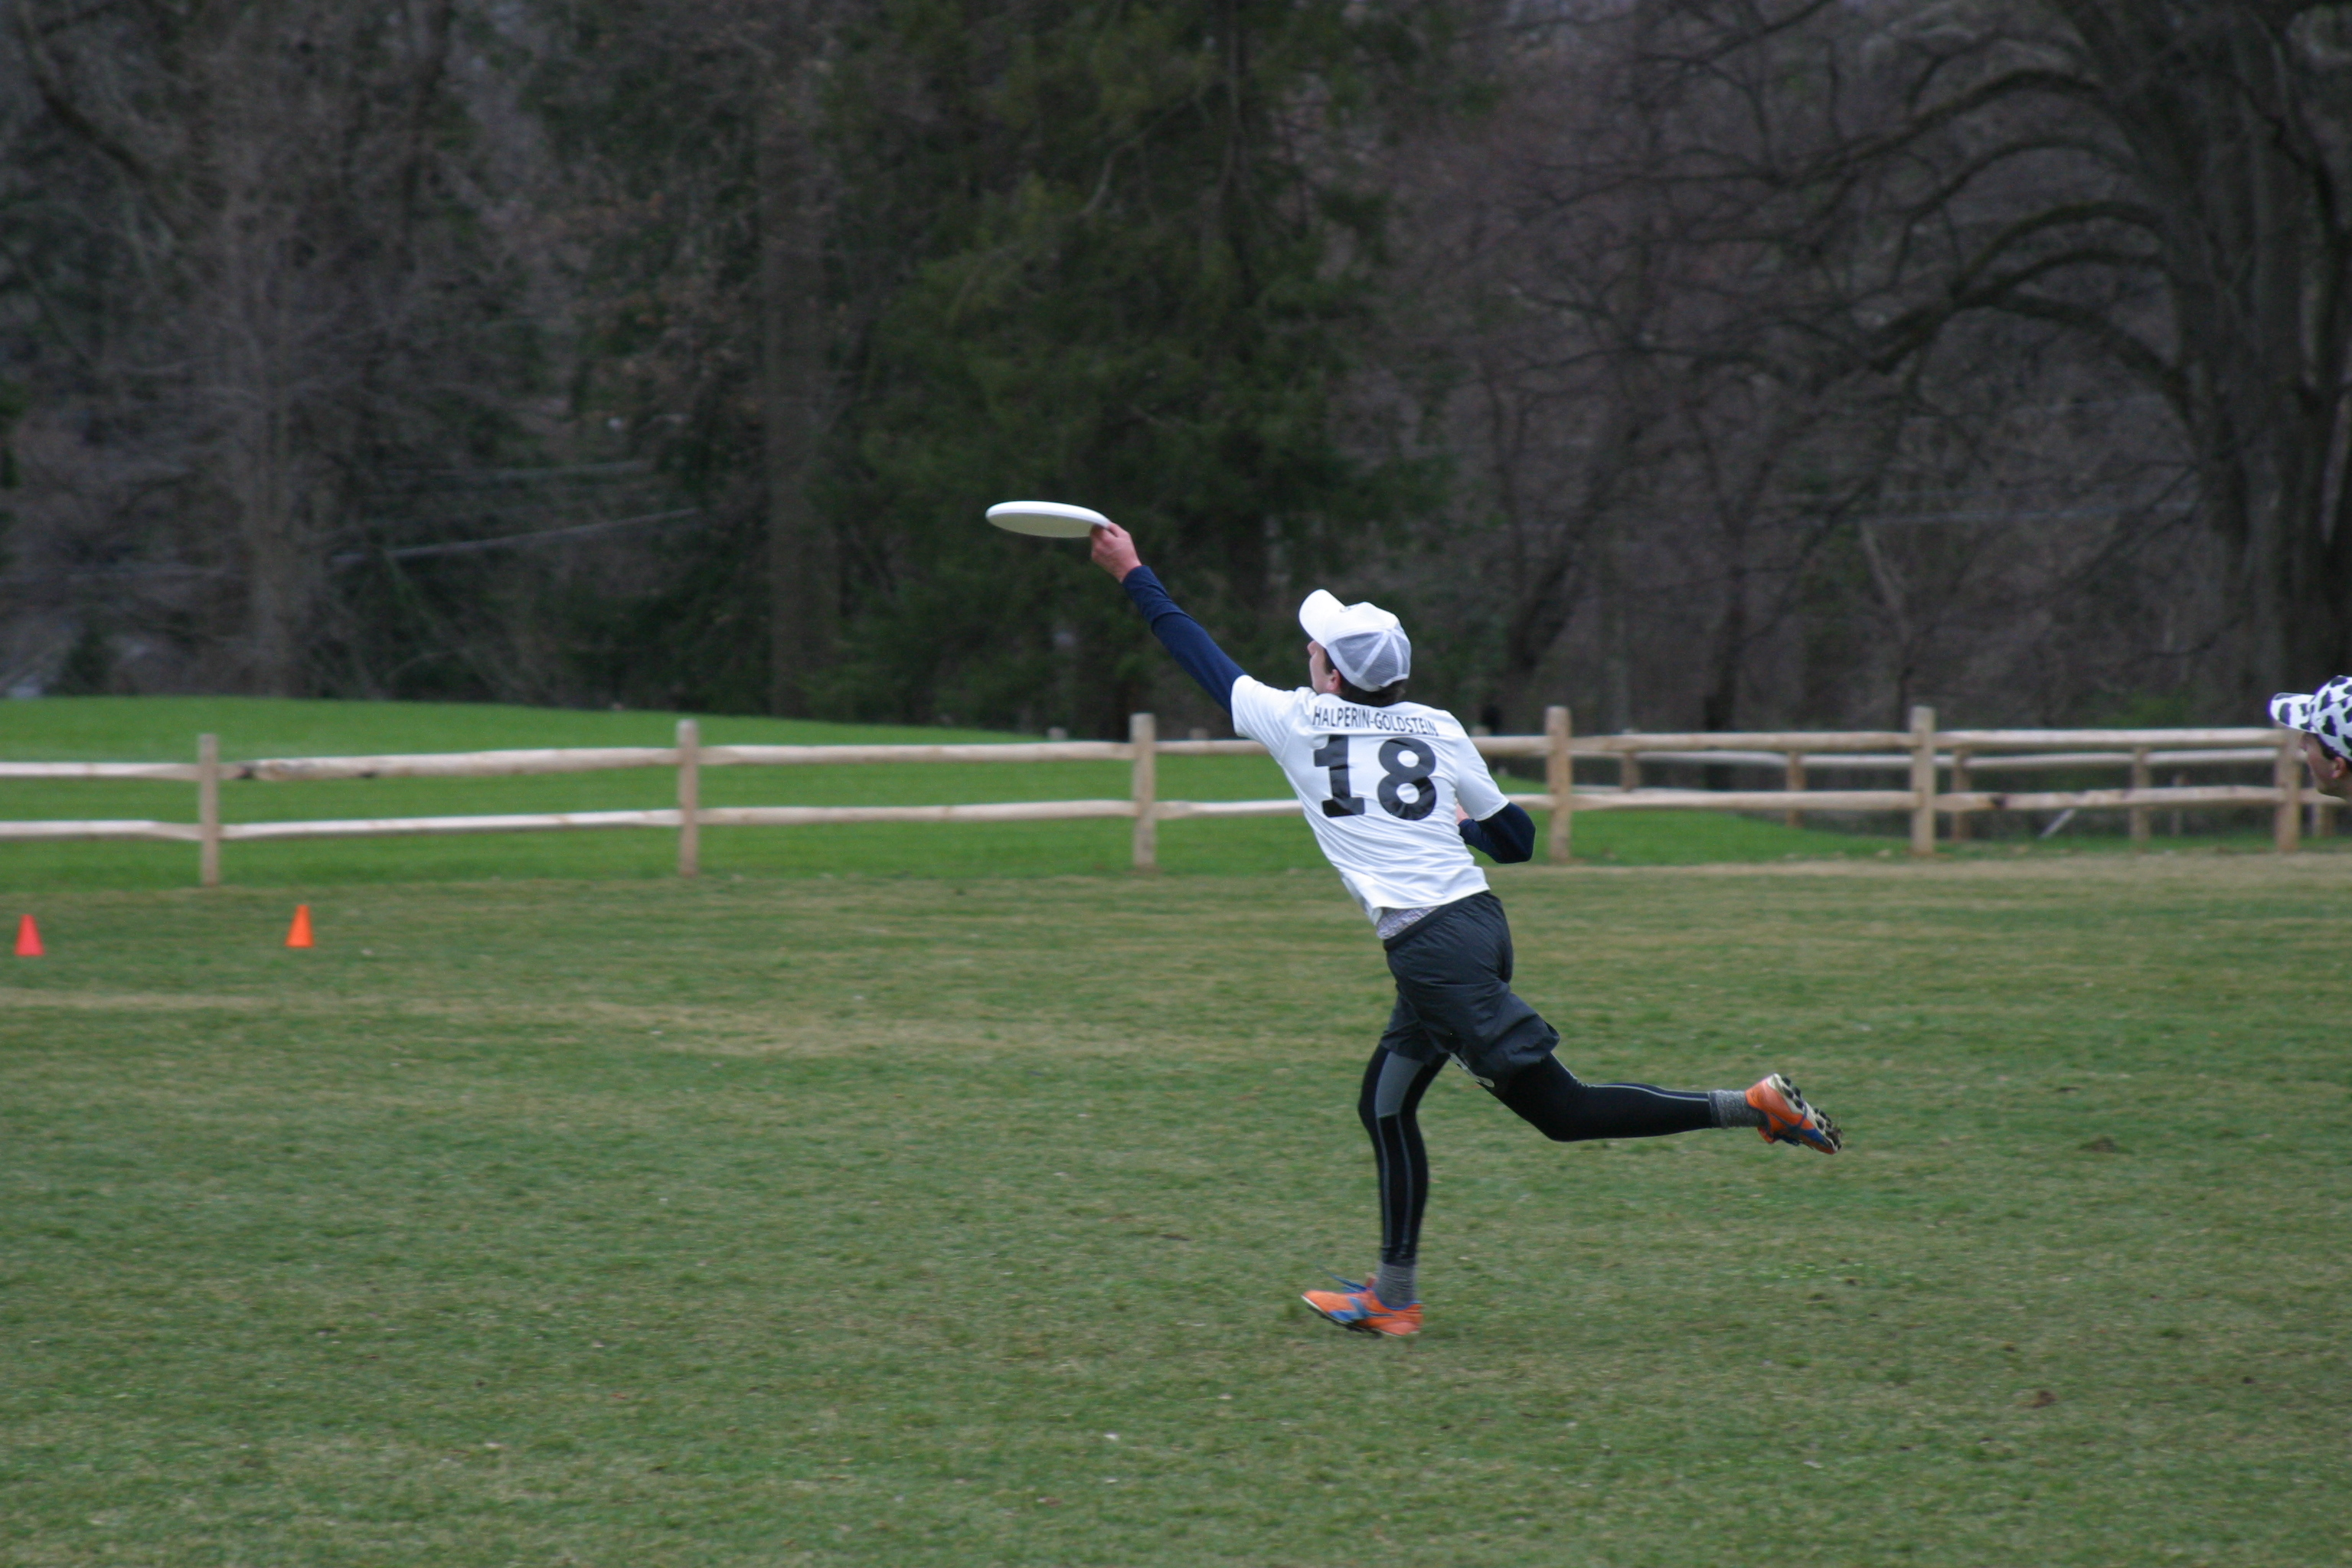 Gabriel Halperin-Goldstein '19 makes an impressive catch